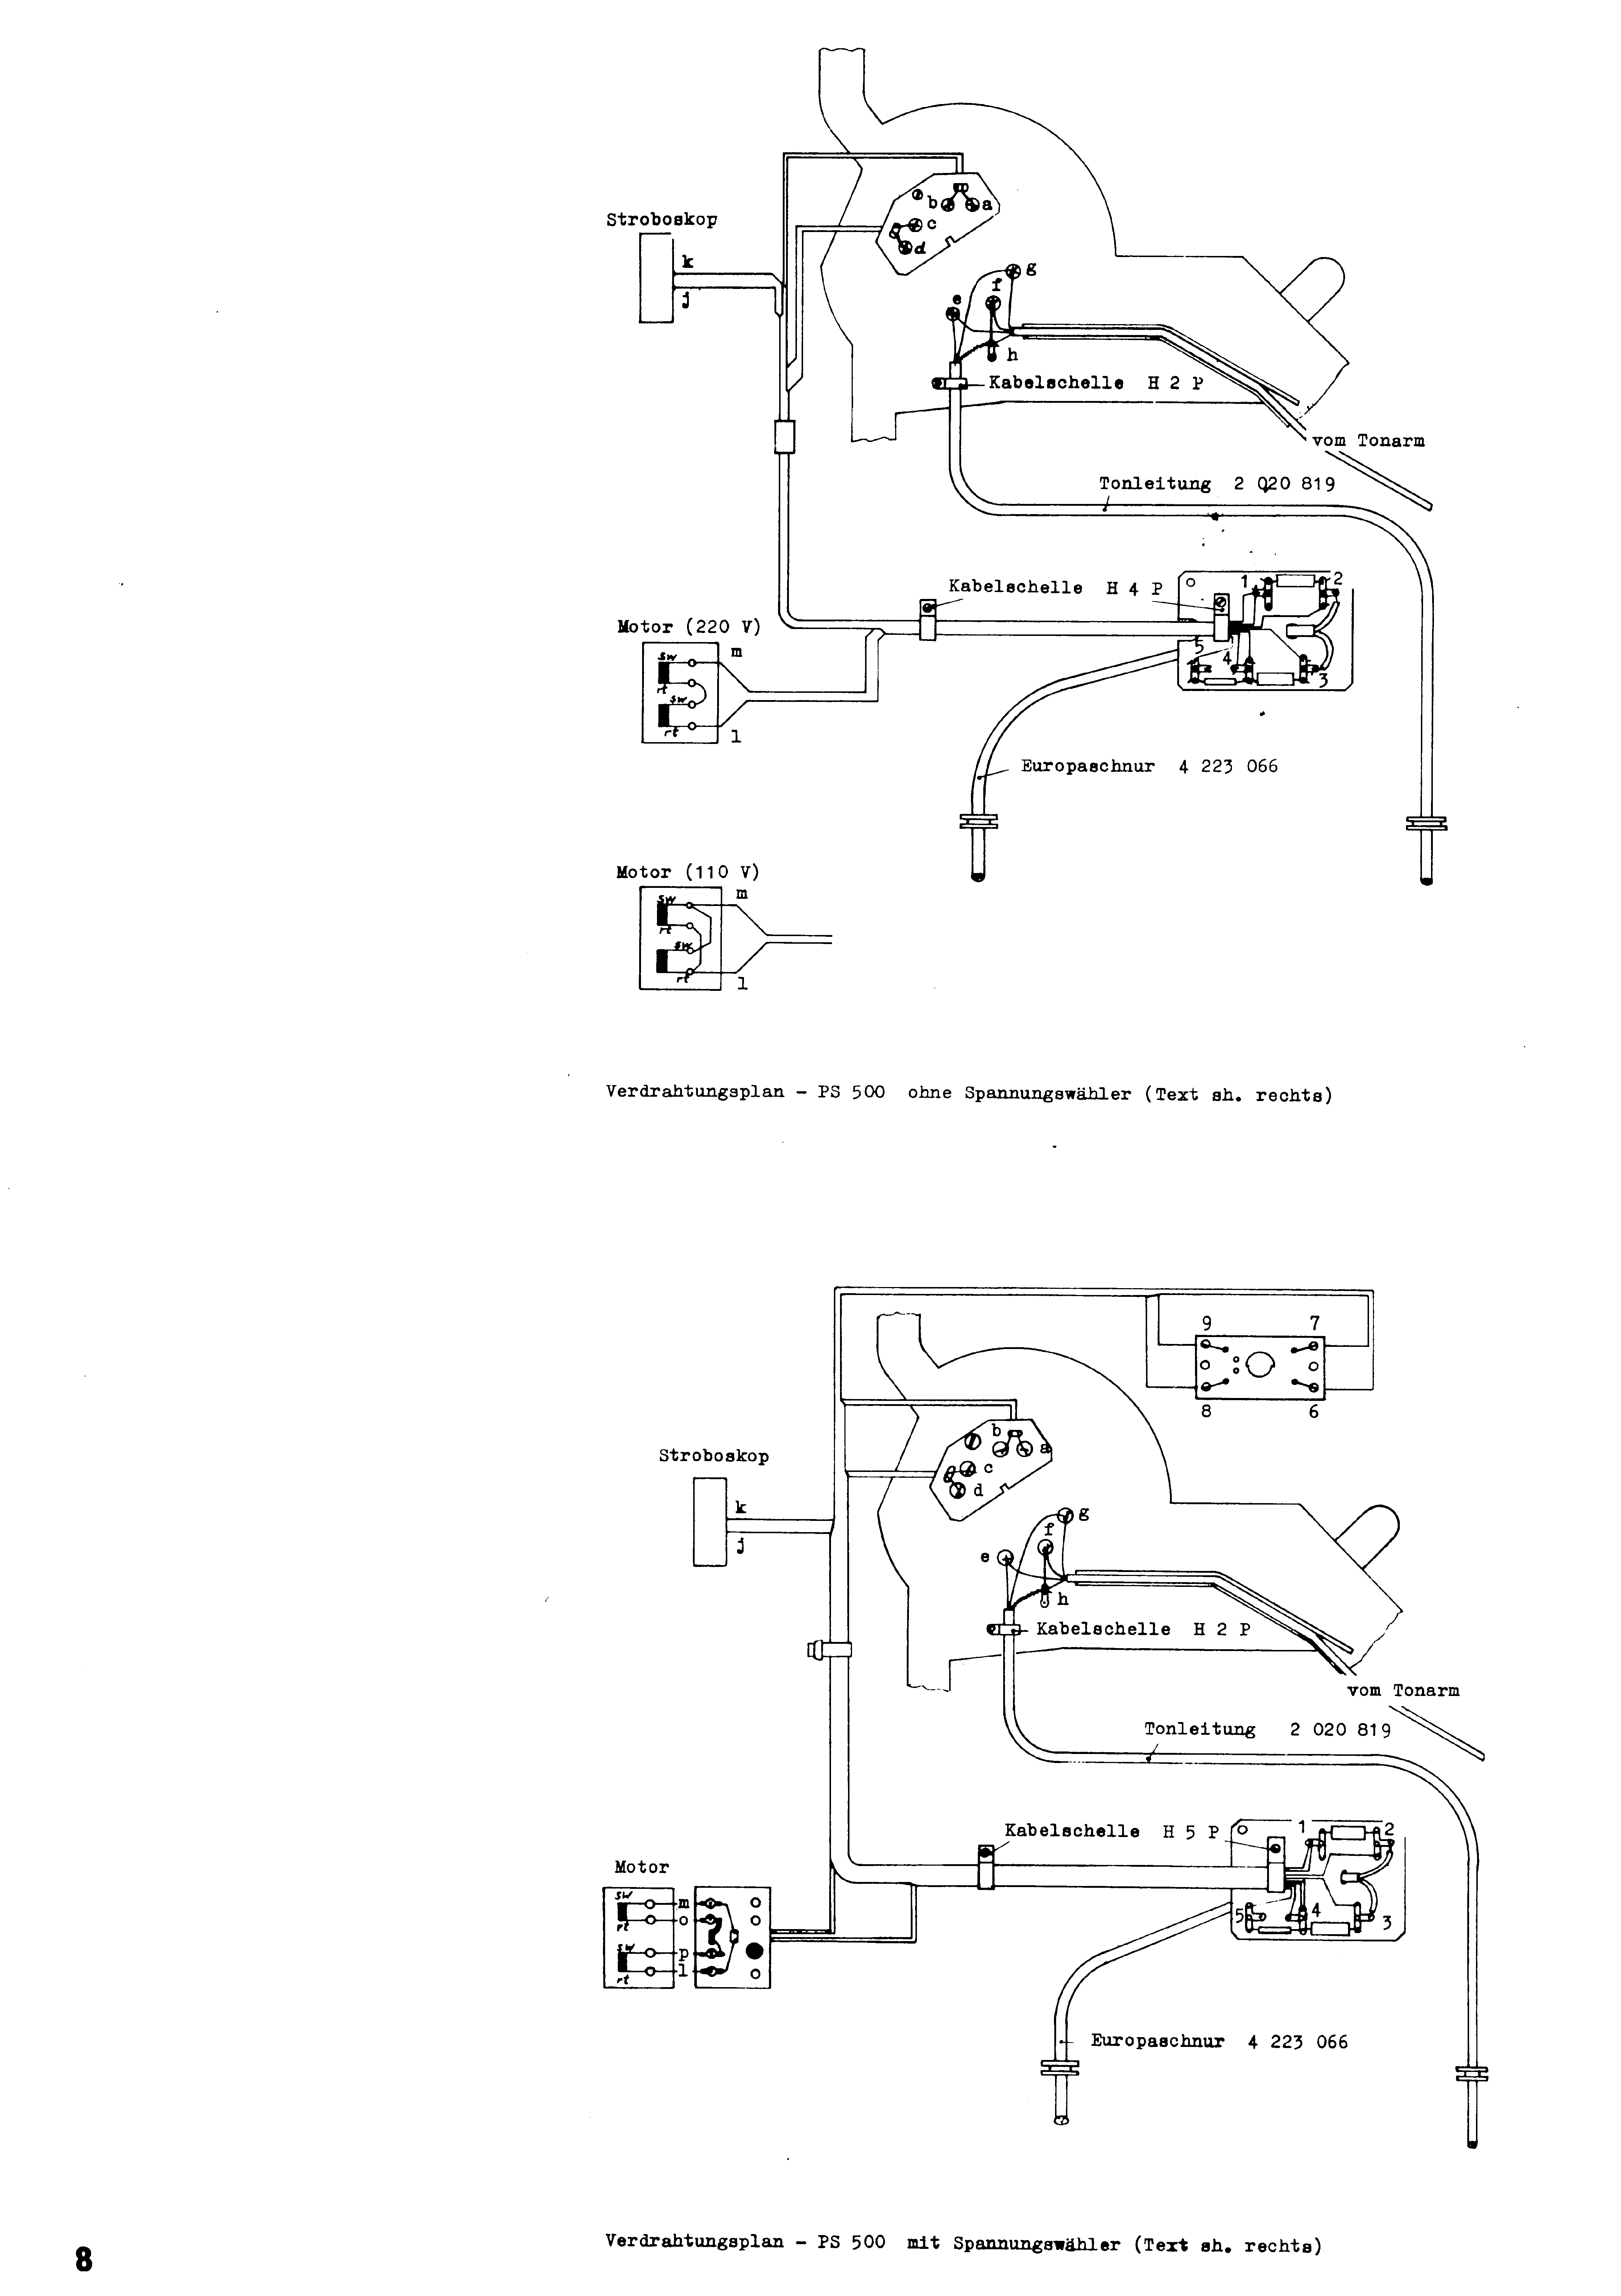 BRAUN PS 500 SM service manual (1st page)